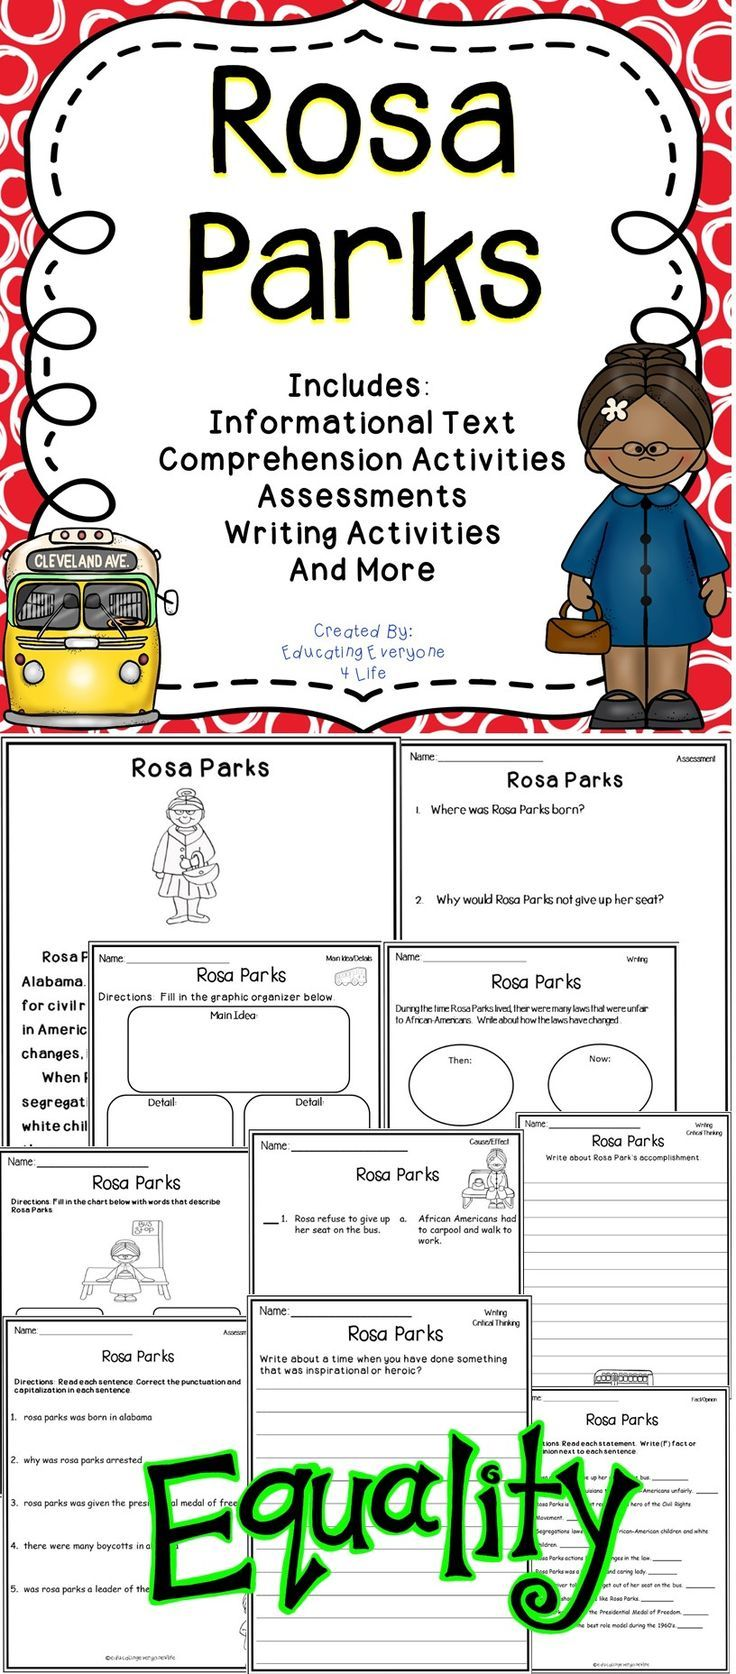 Celebrate The Life Of Rosa Parks In The Classroom With These Fun And Engaging Lessons This Reso Rosa Parks Writing Activities Reading Comprehension Activities